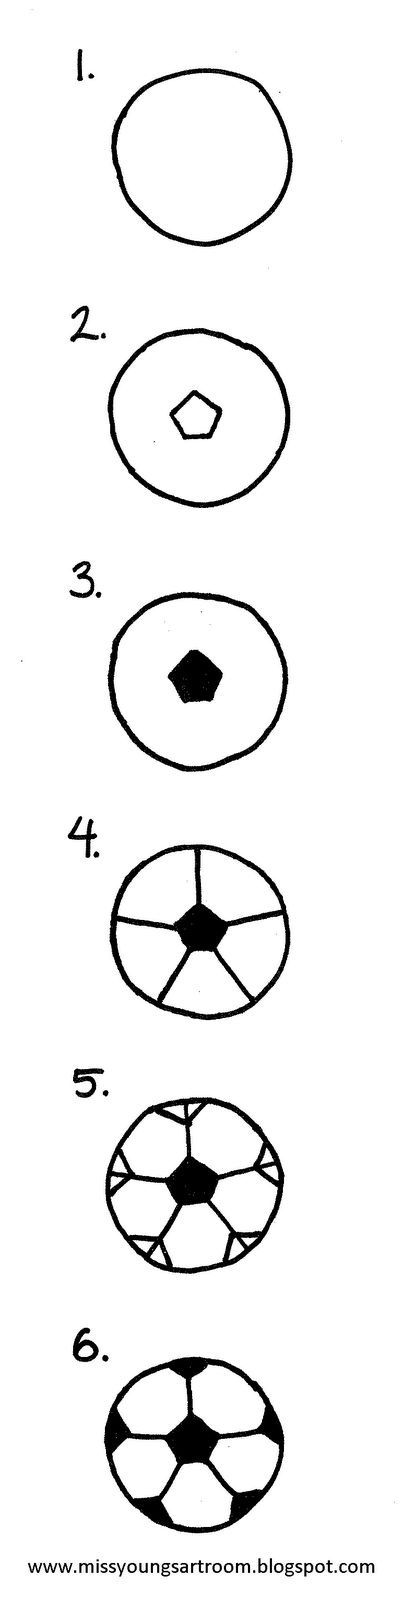 How to draw a soccer ball art stuff pinterest for Things i can draw